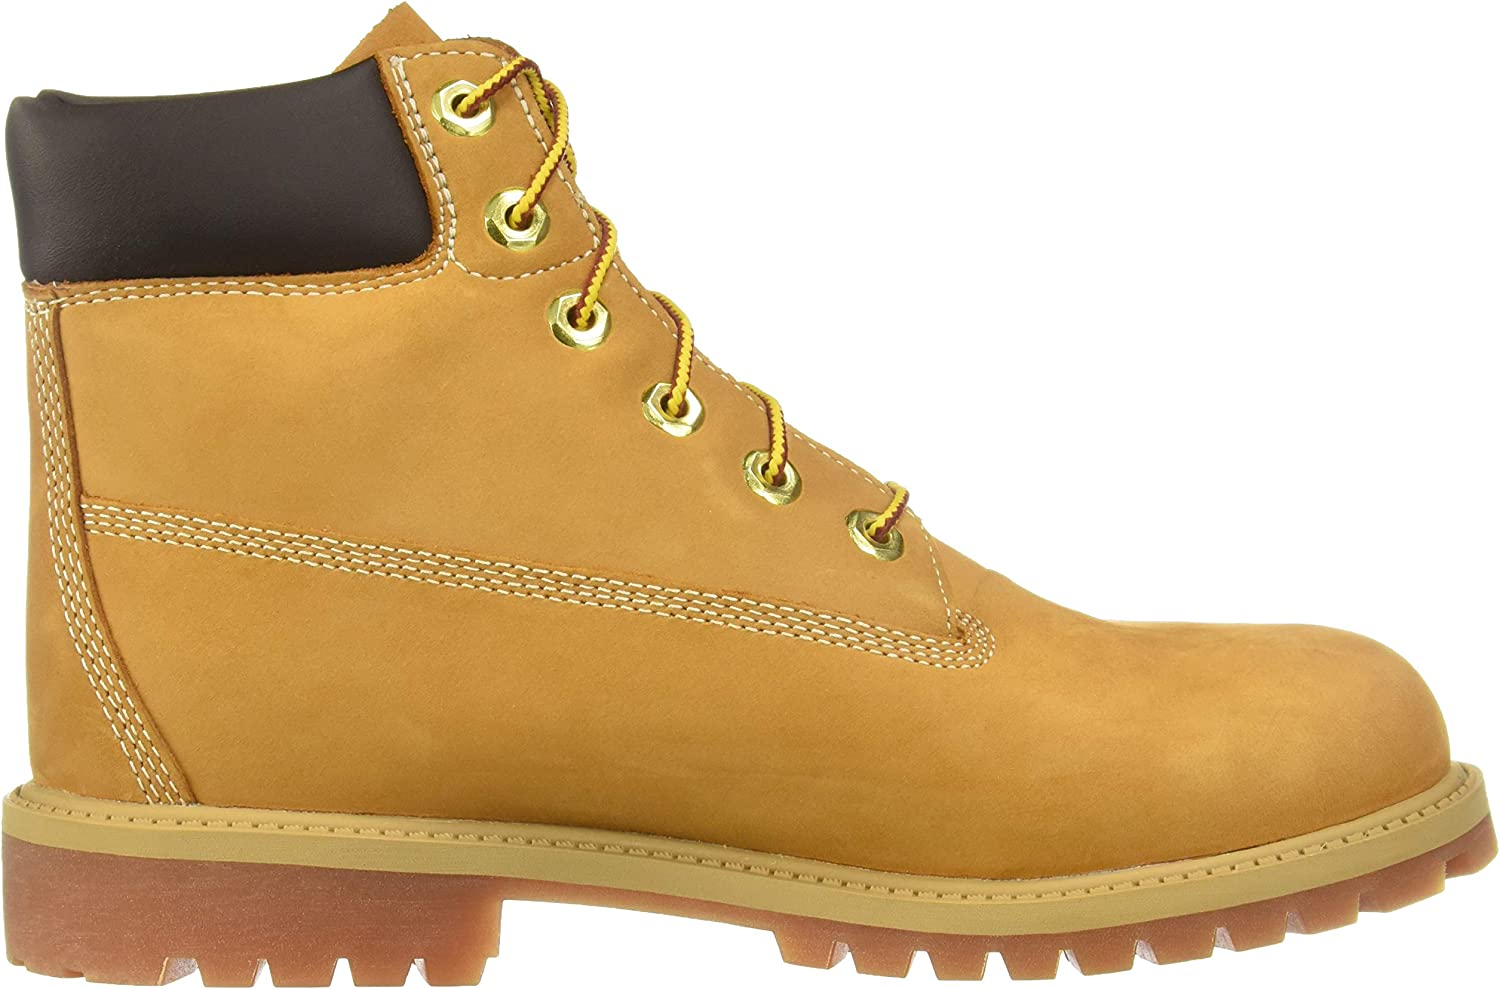 Timberland Classic FTC_6 in Premium WP Boot, Bottes Mixte Enfant Jaune (Wheat Nubuck)